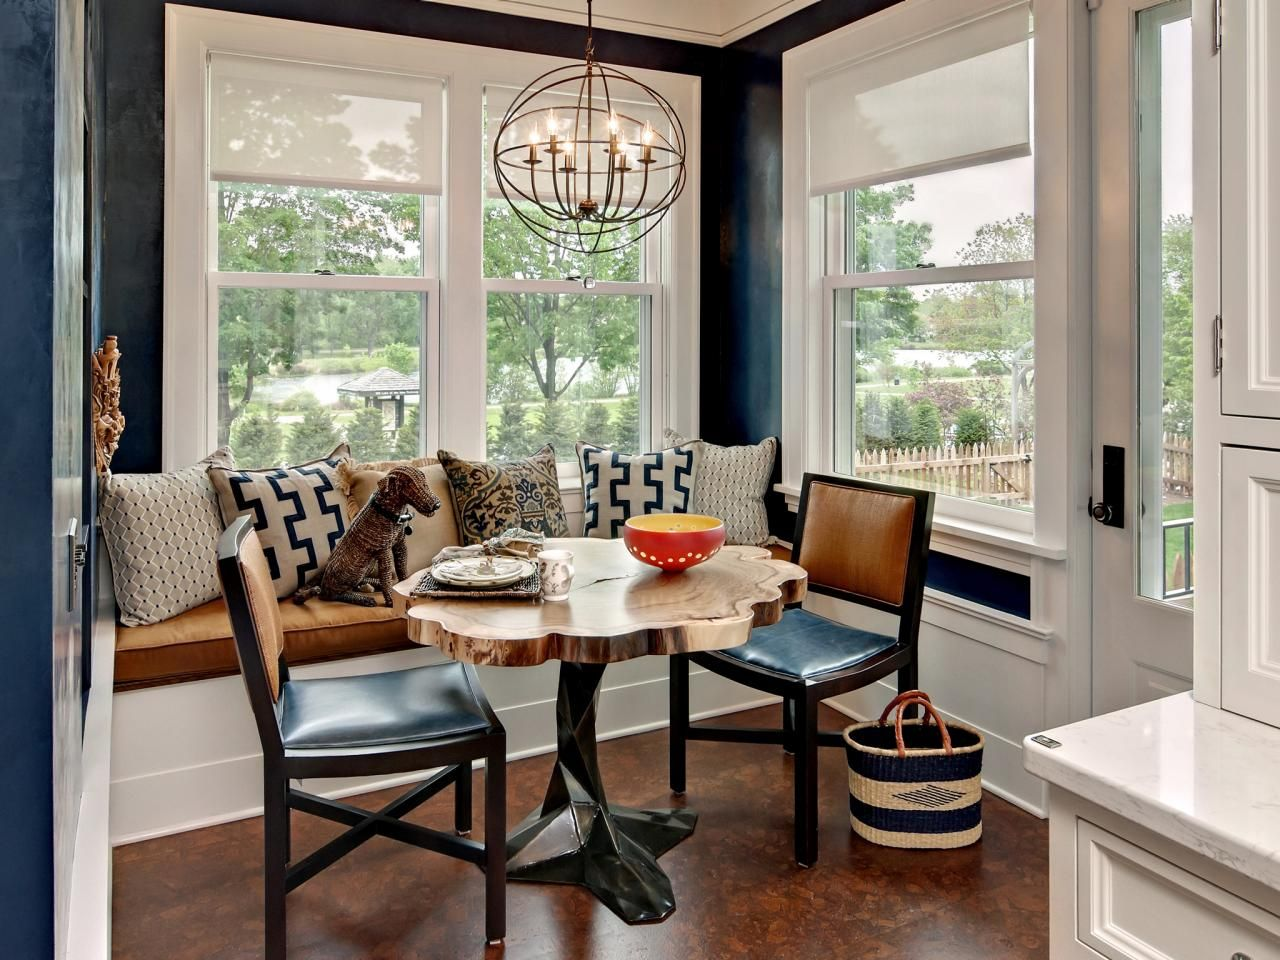 Dining Room With Banquette Seating New 20 Tips For Turning Your Small Kitchen Into An Eatin Kitchen Design Ideas